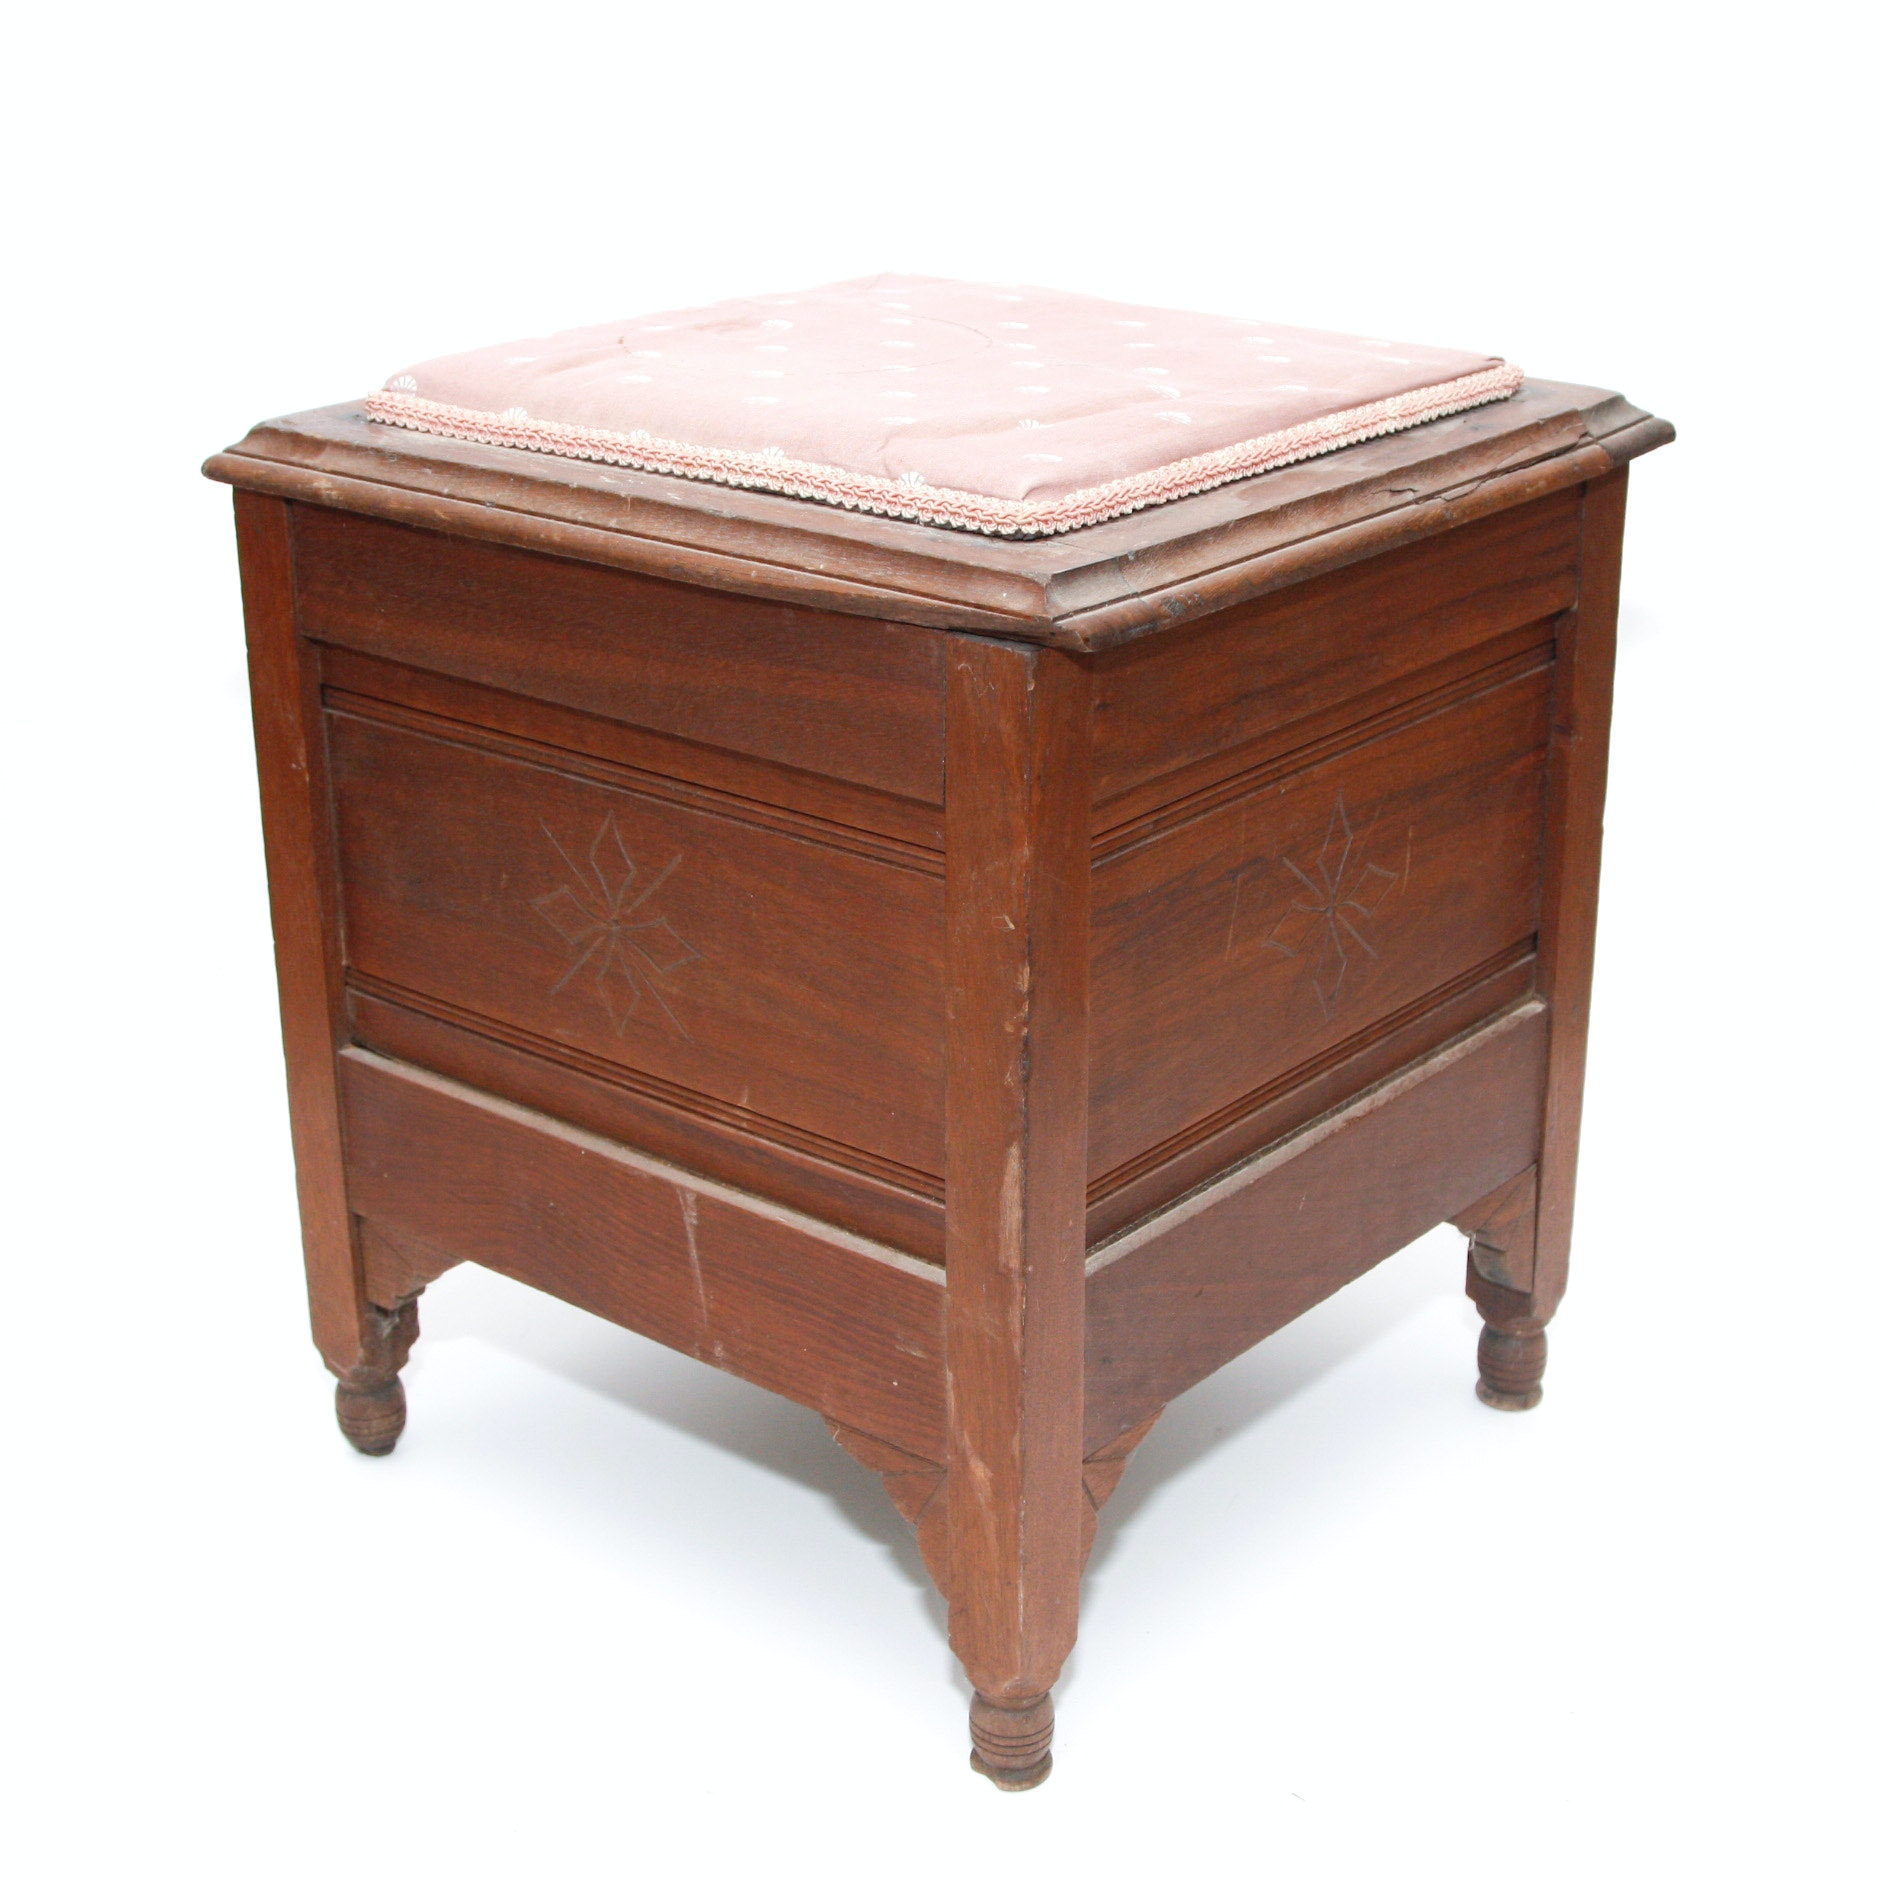 19th C. Chamber Pot Commode